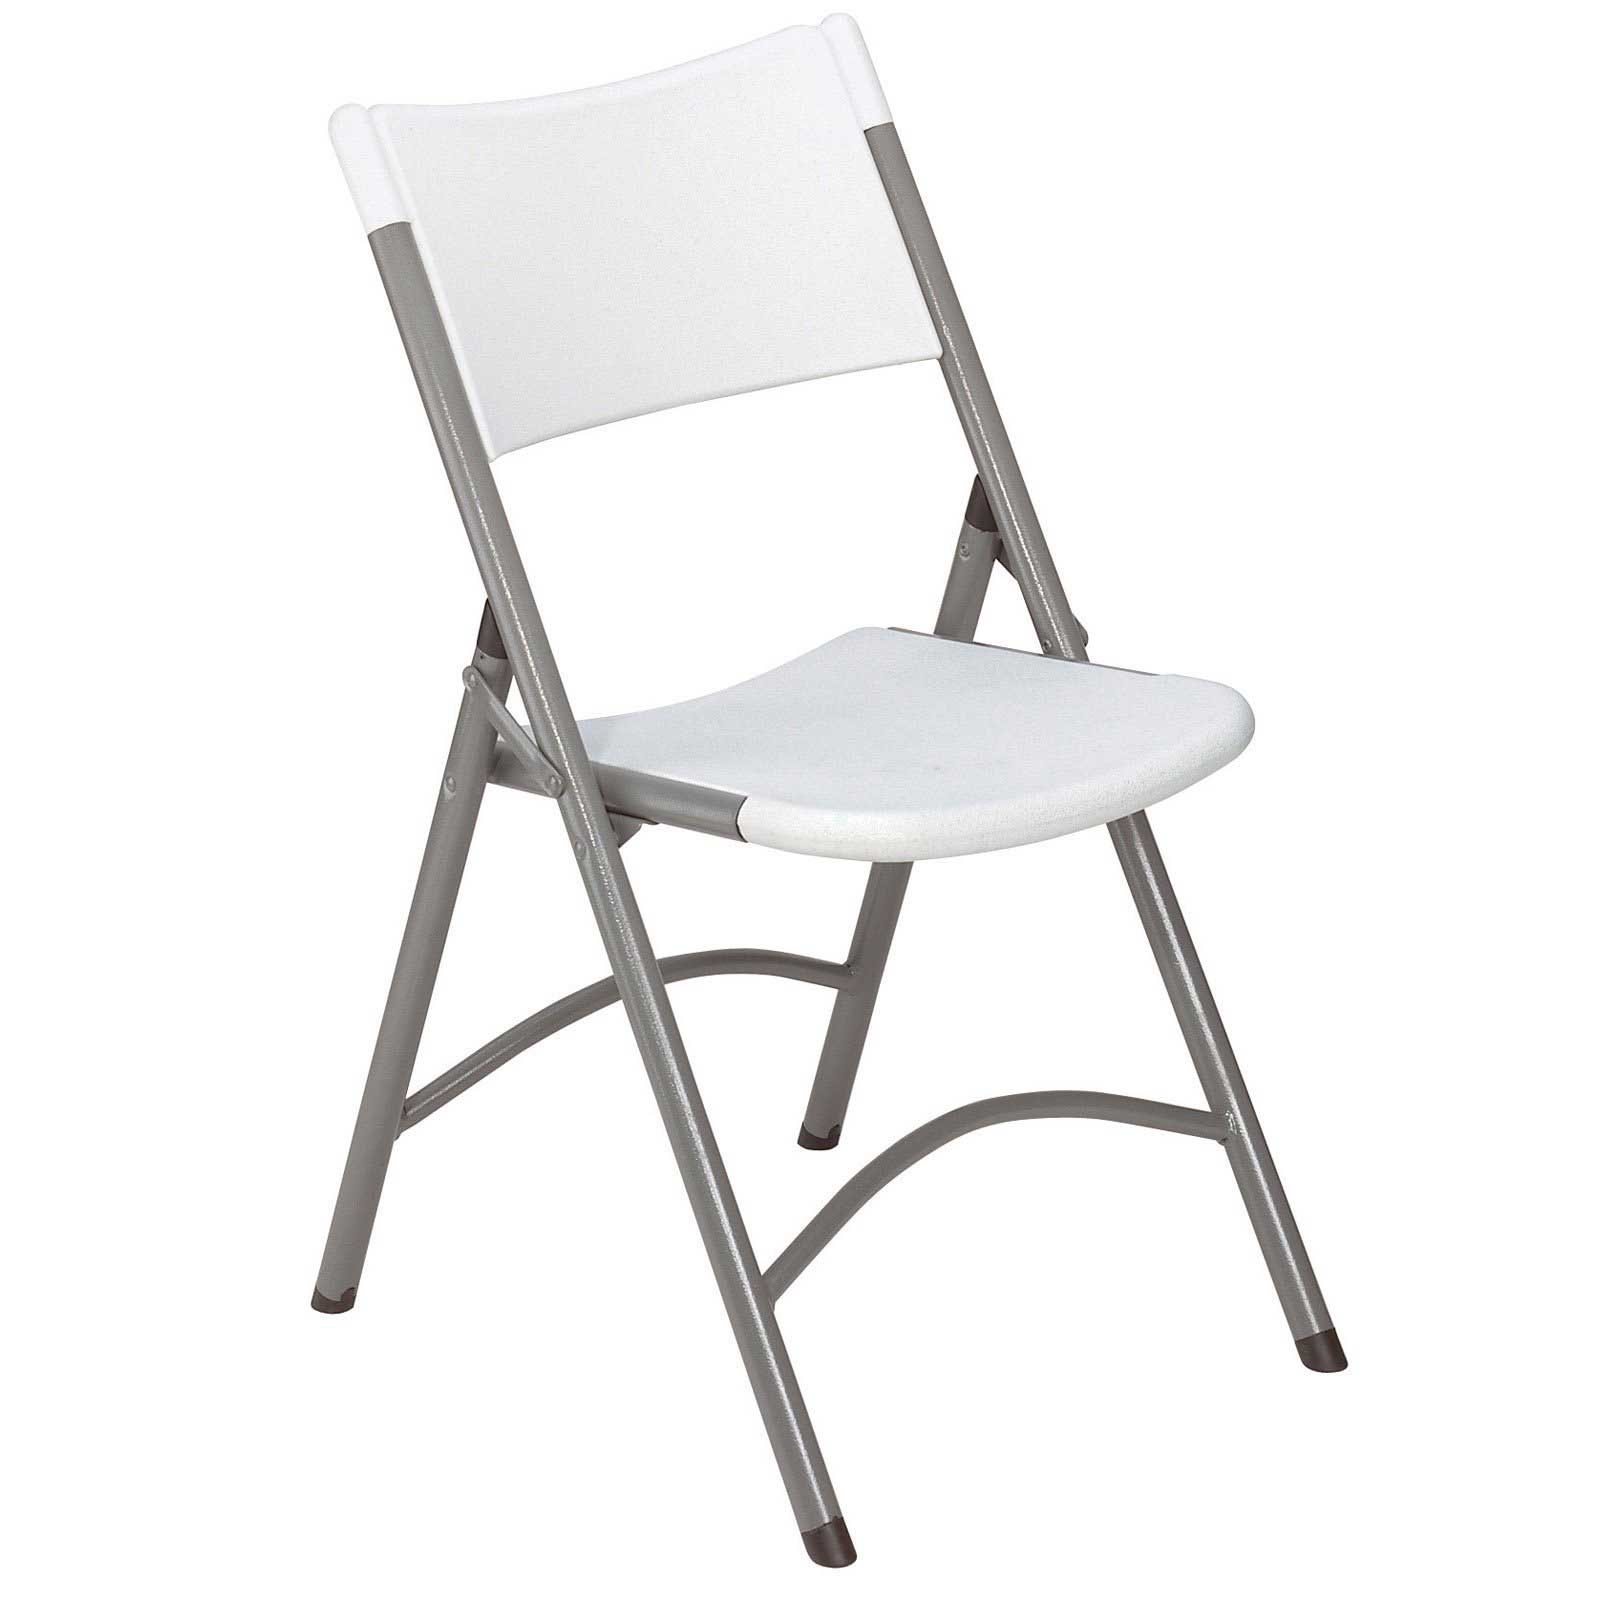 Folding White Chairs Plastic Folding Chairs Office Furniture